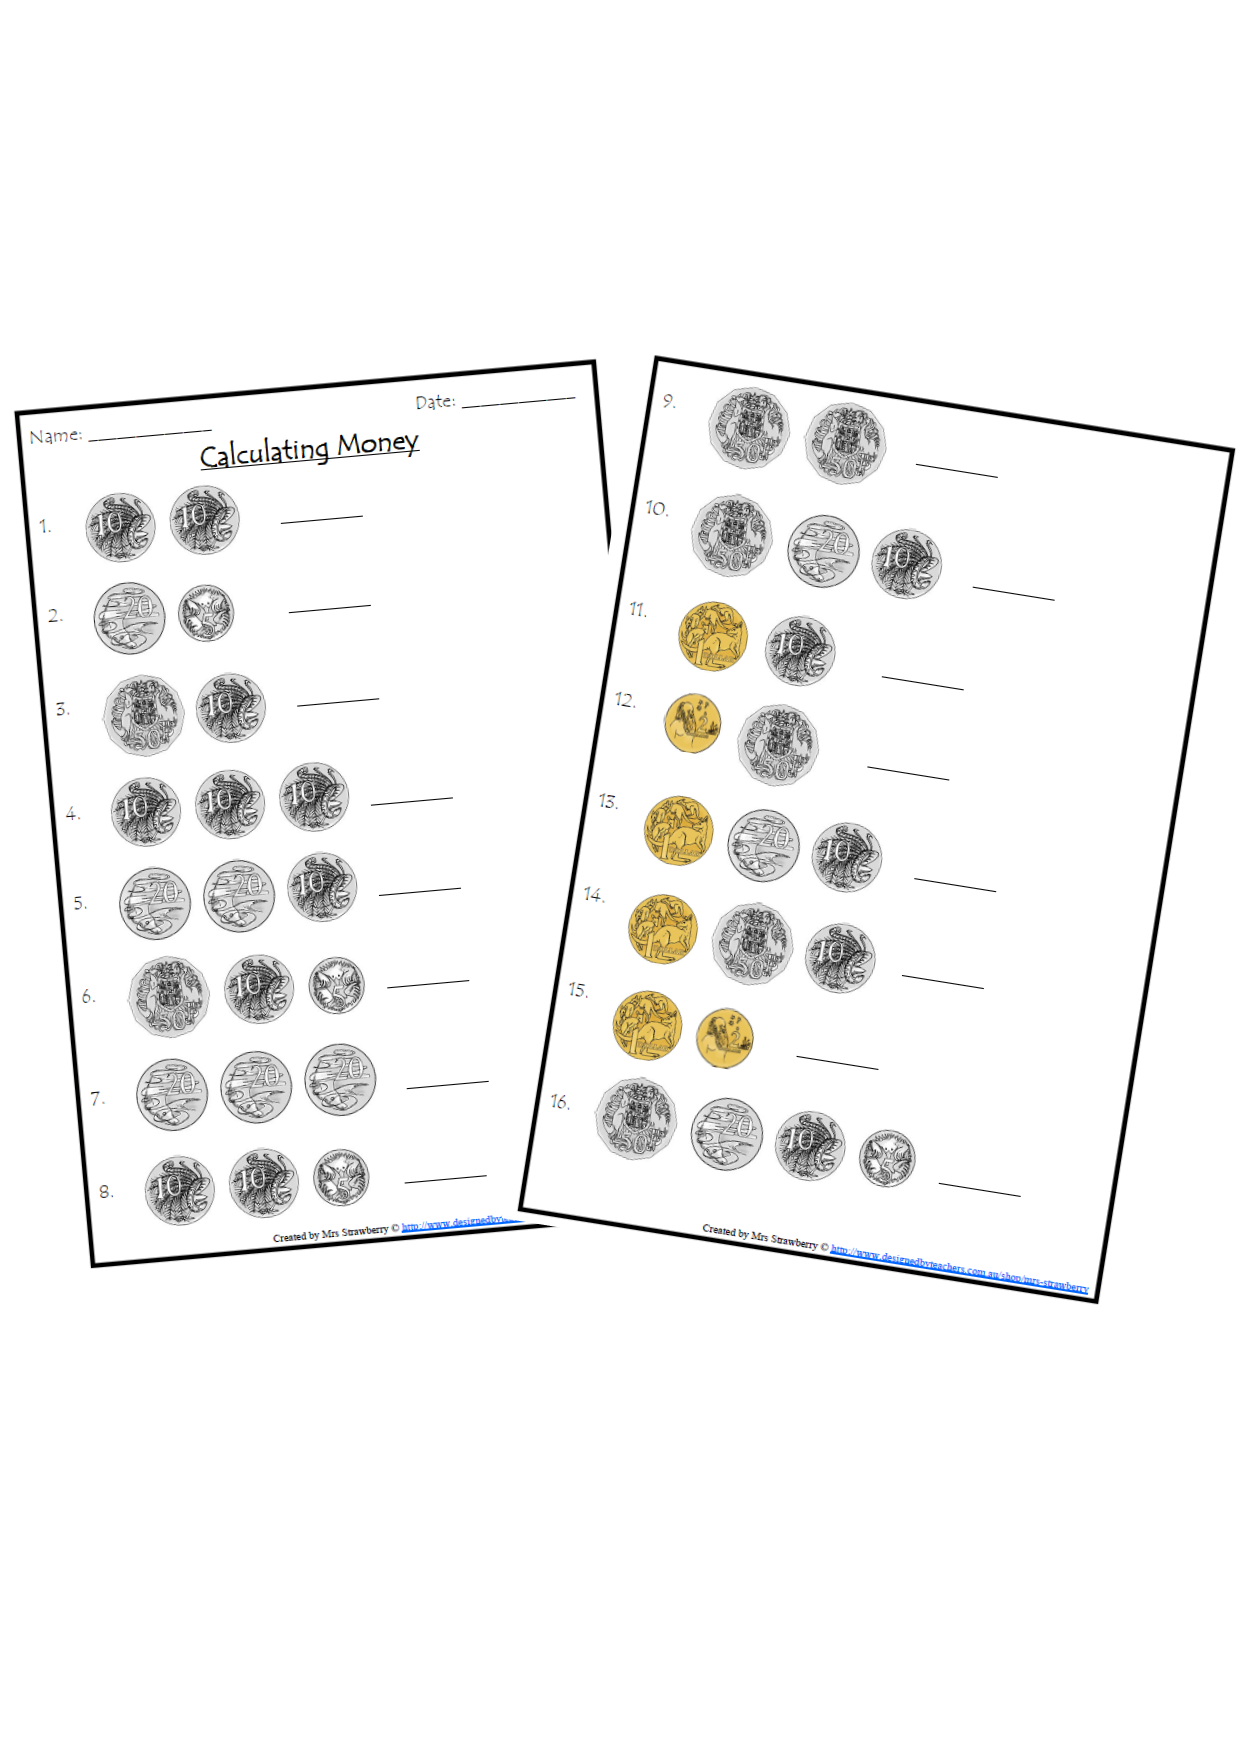 Calculating Money With Images